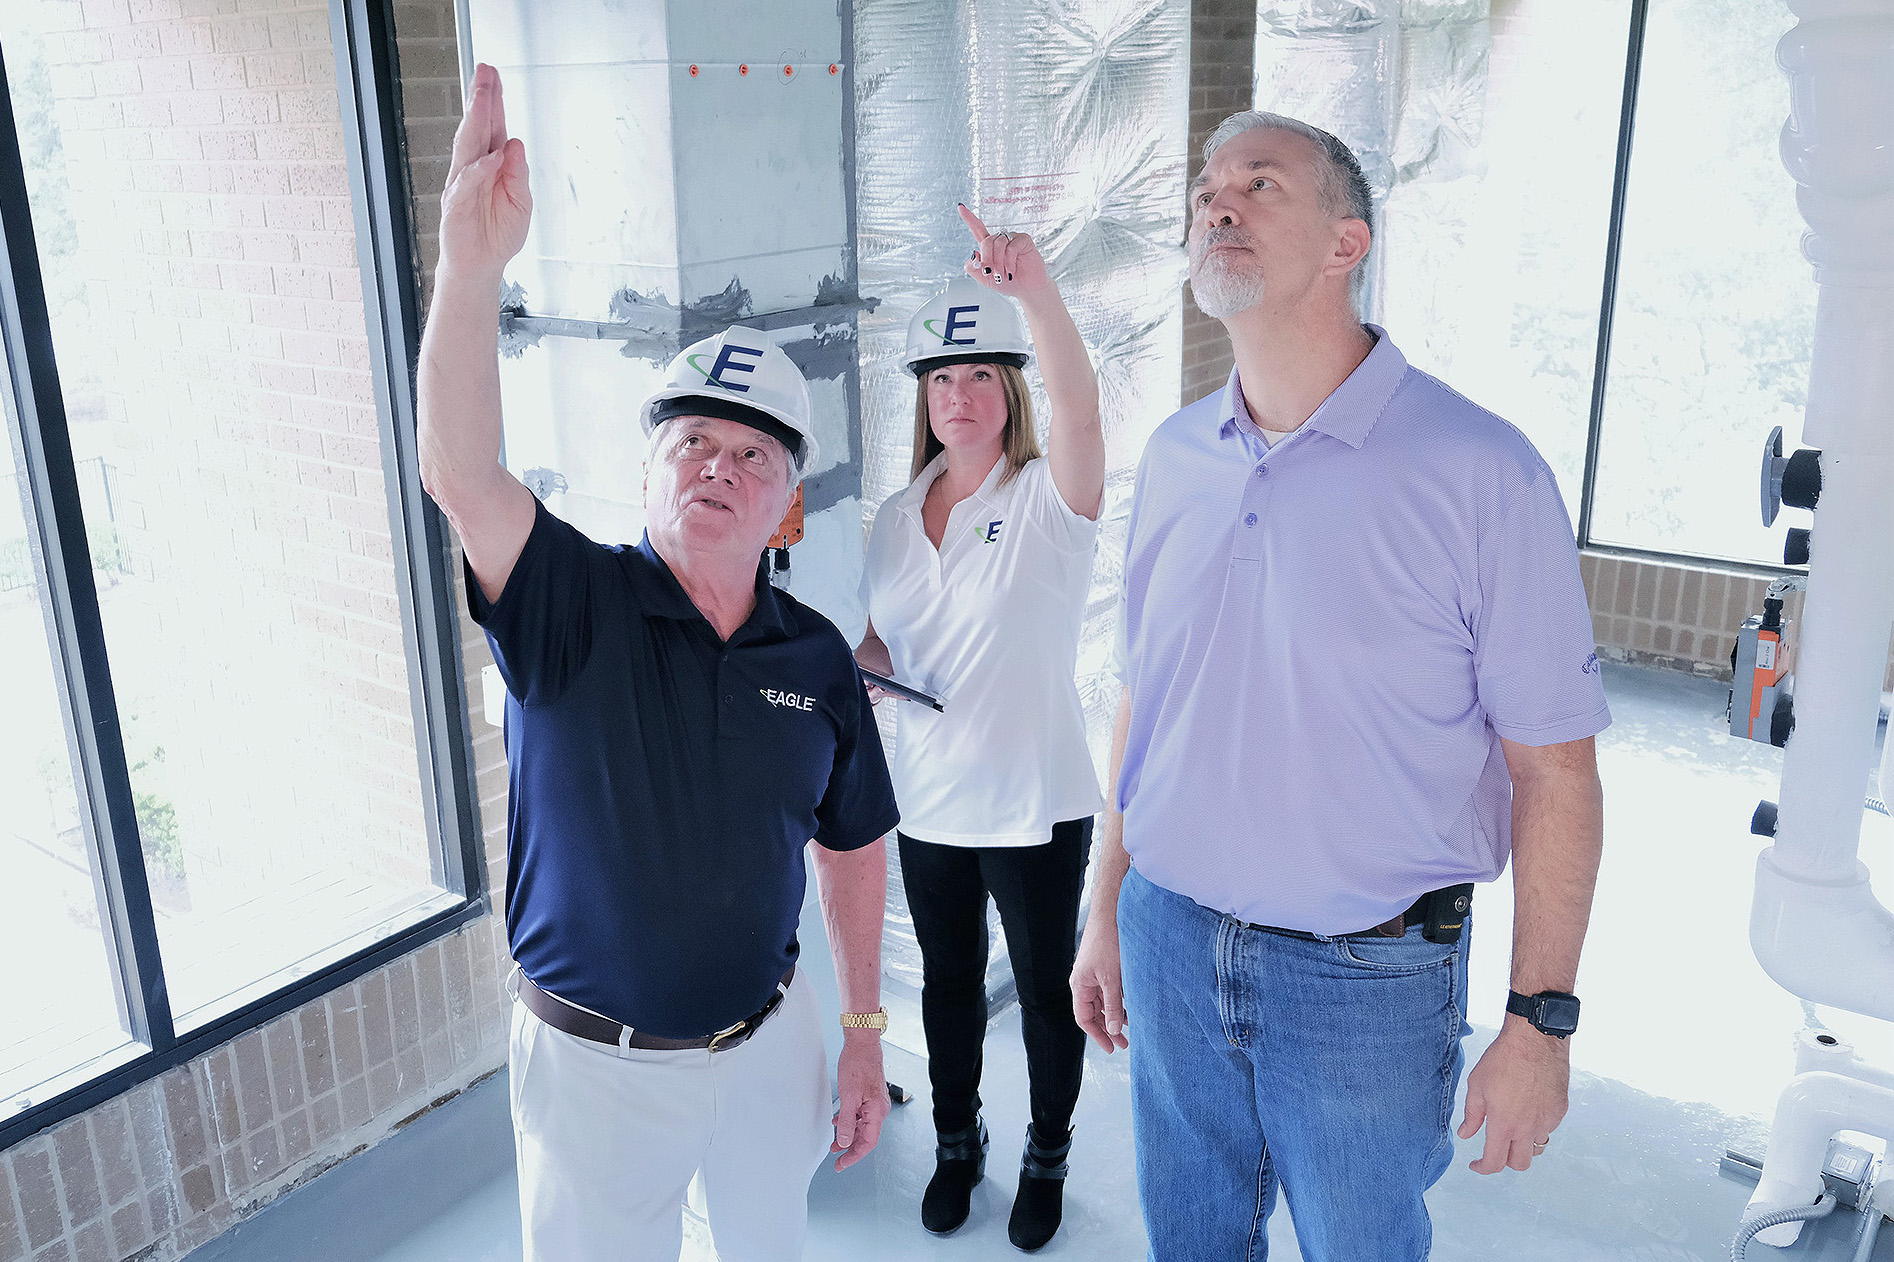 Eagle consultants standing with a man wearing a purple polo shirt. Consultants, a white male and a white female are pointing towards the ceiling. They're standing in an unfinished room under construction